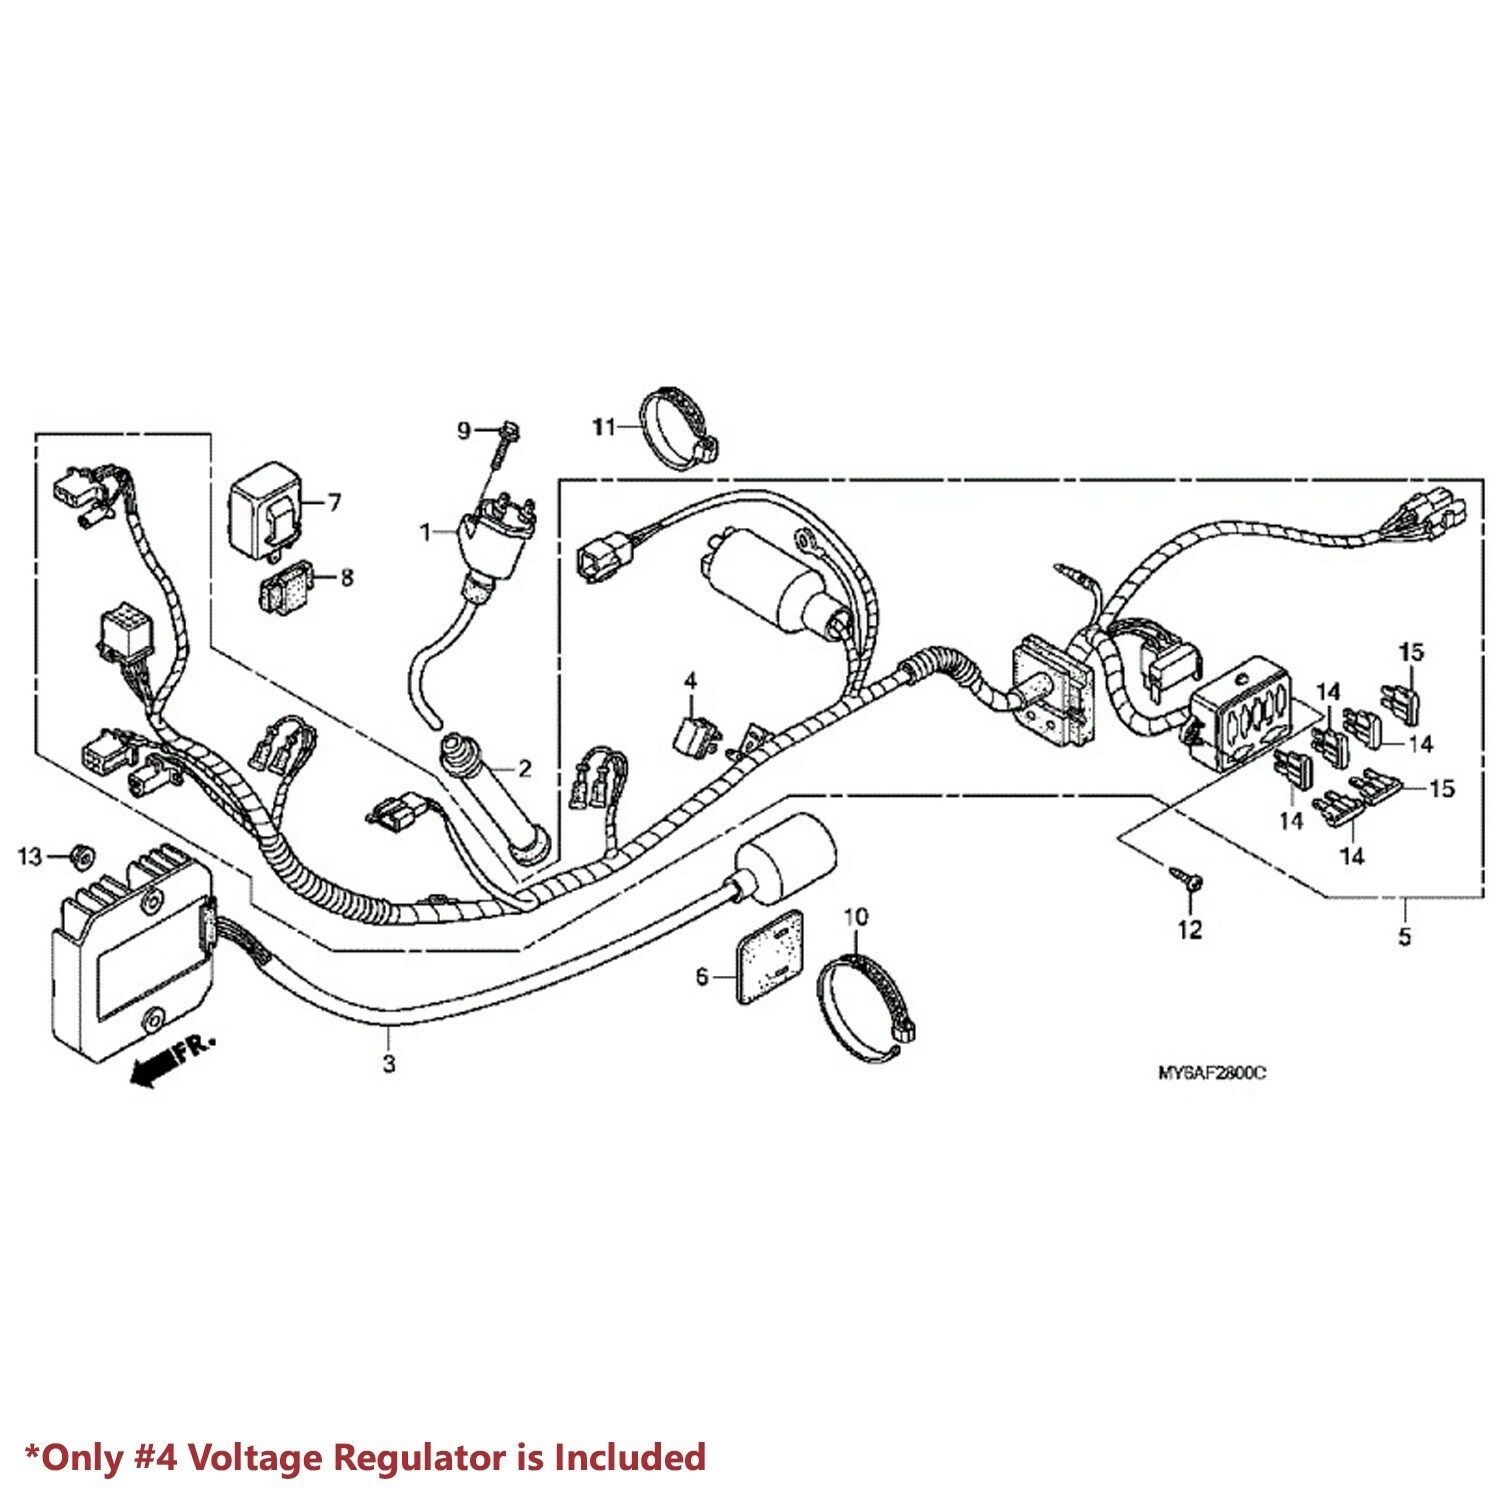 Honda Xr650l Wiring Harness Diagram